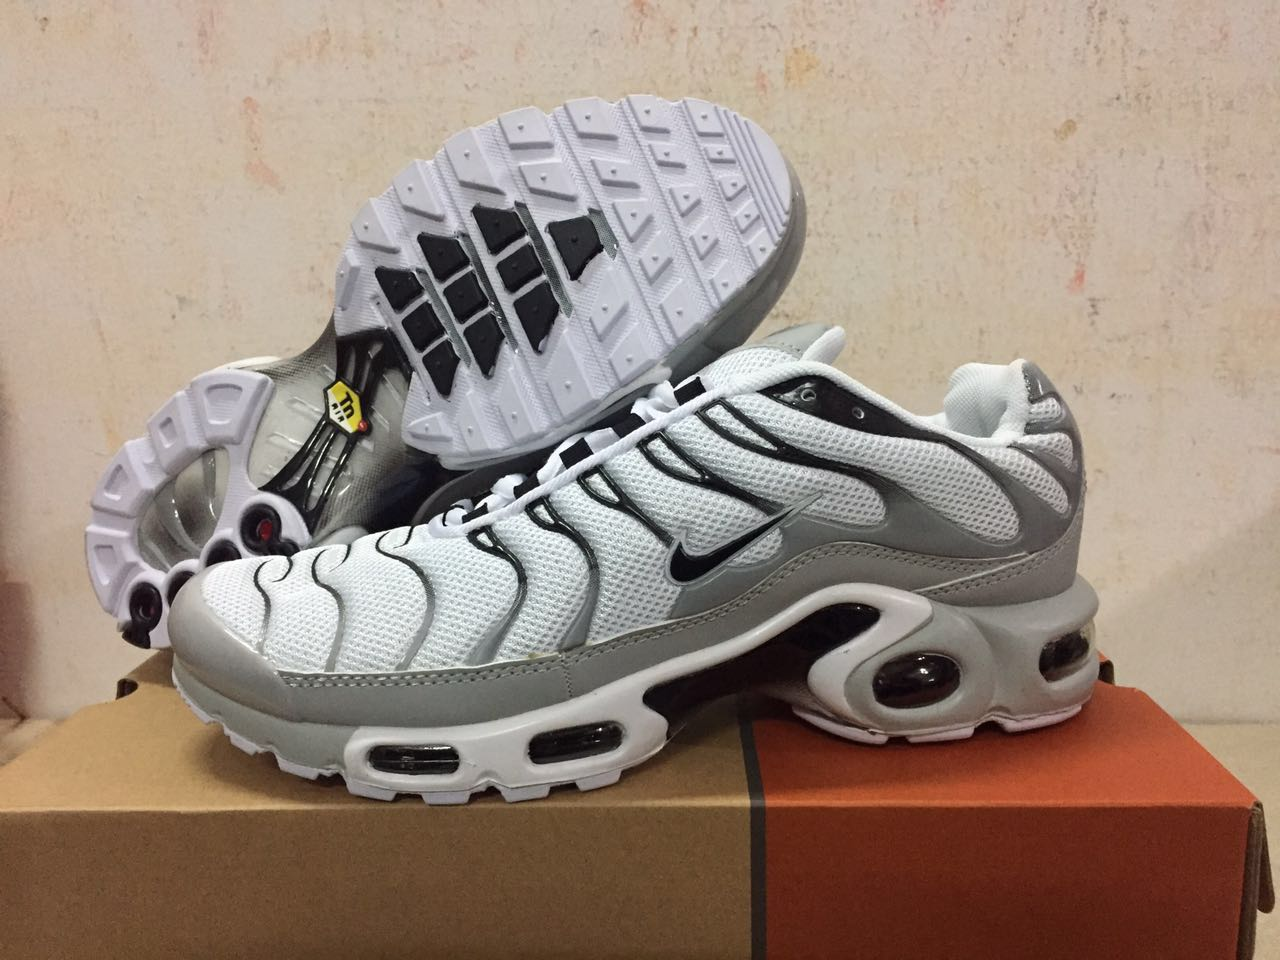 Men's Nike Air Max TN Shoes White/Grey/Black